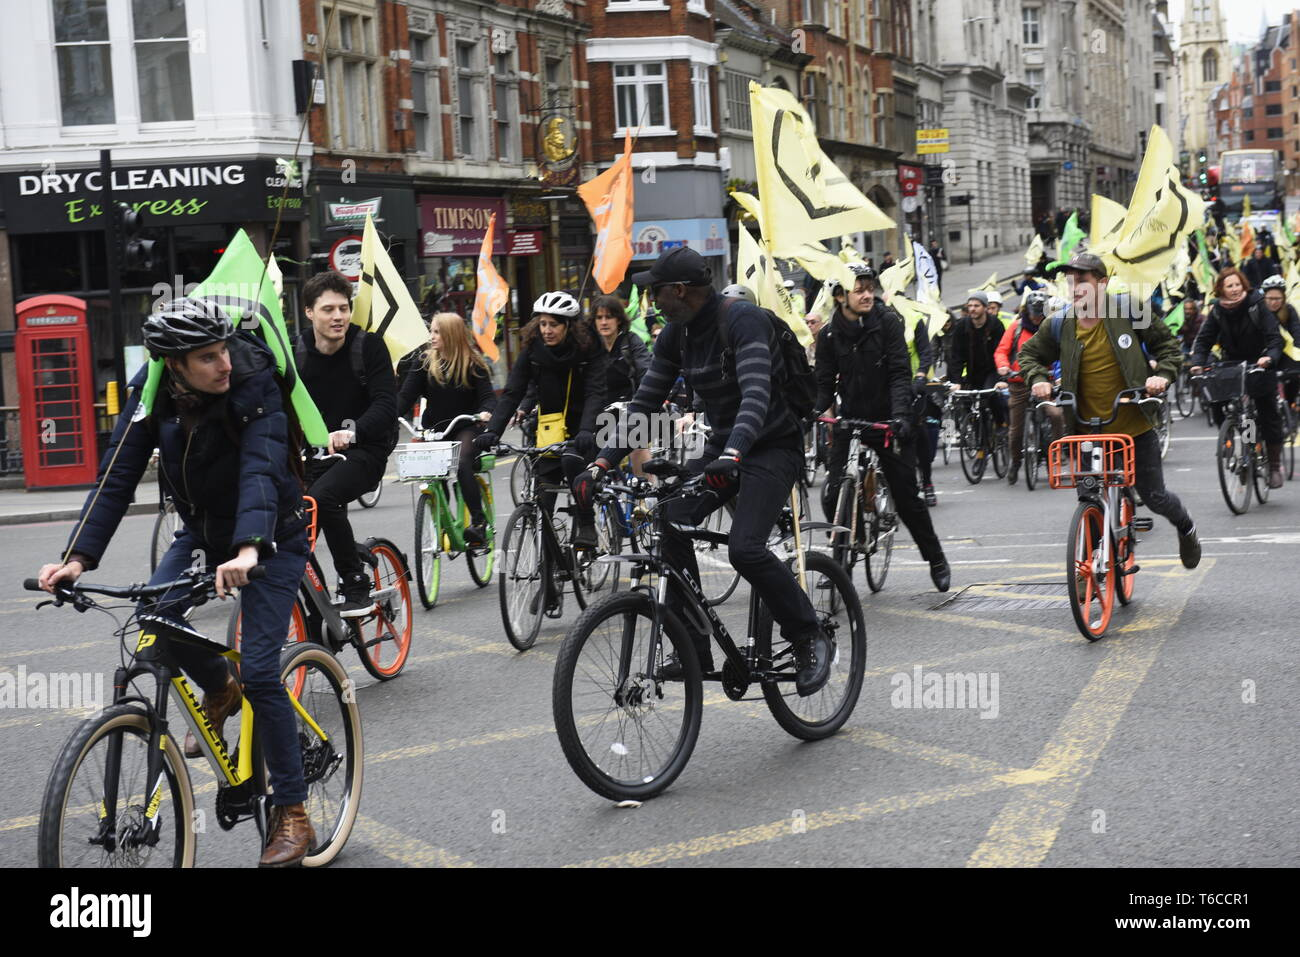 """Extinction Rebellion Cyclists 'Swarm' Central London to Protest Insect Death - Extinction Rebellion demonstrators held a """"Critical Mass"""" cycling event - Stock Image"""